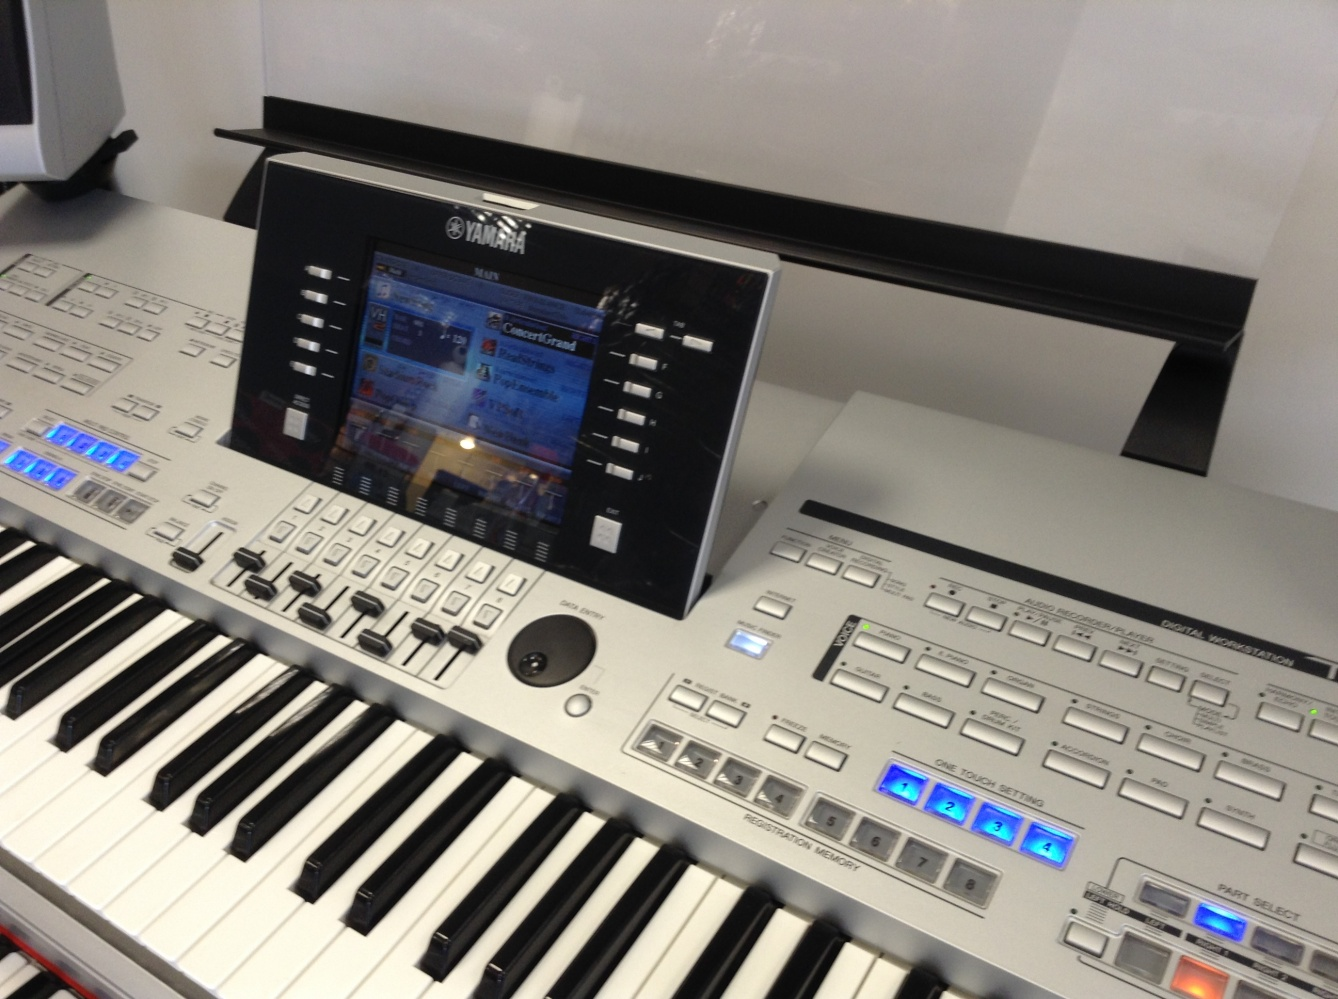 USED Yamaha Tyros 4 Keyboard with MS04 Speakers  Superb